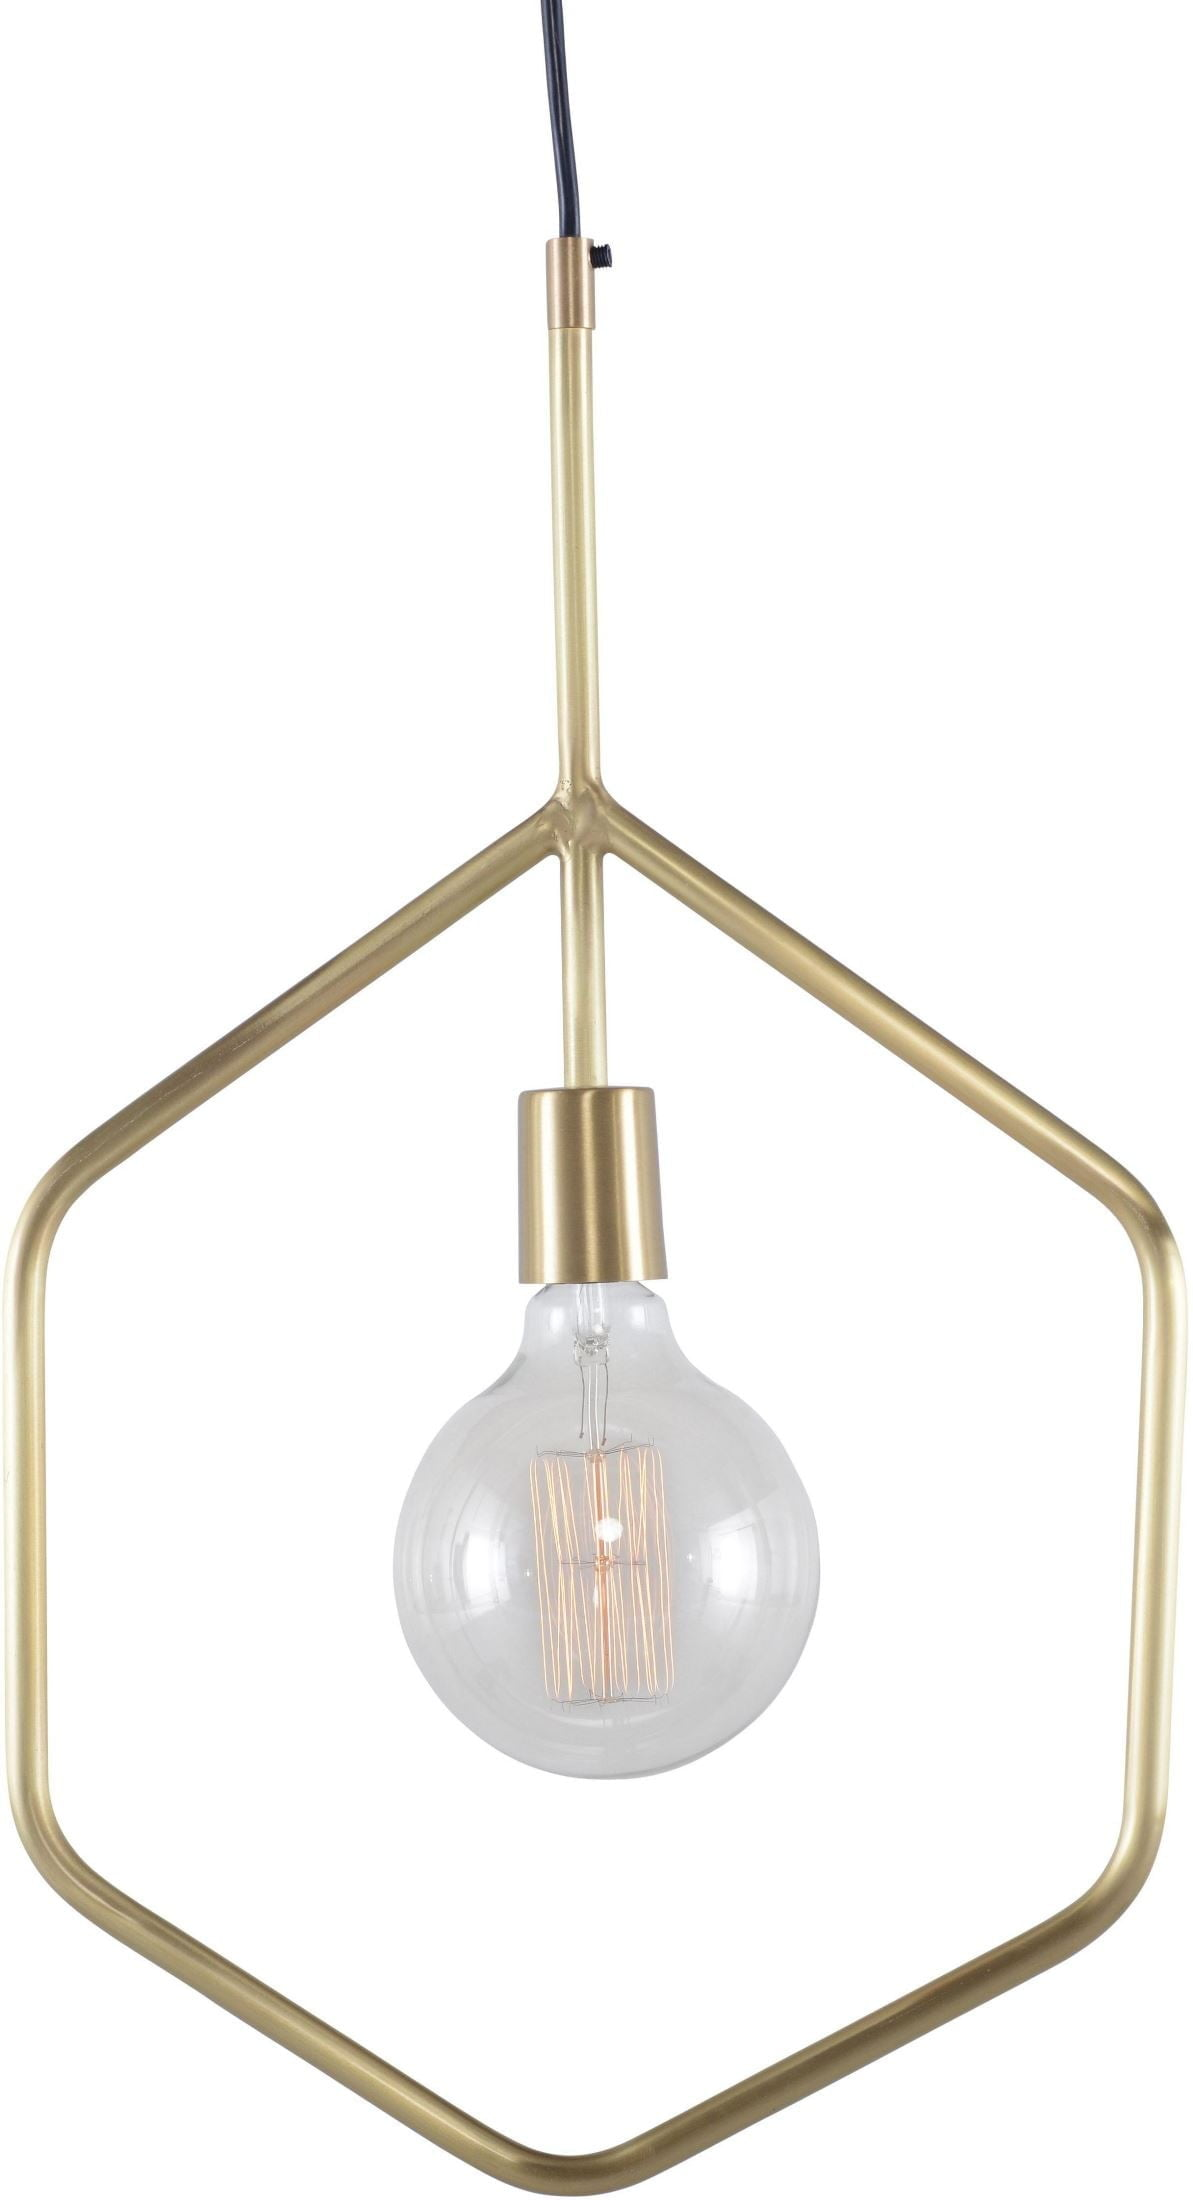 colorado webster is sometimes following listed manufacturer brass under also sku aged numbers temple the light pendant